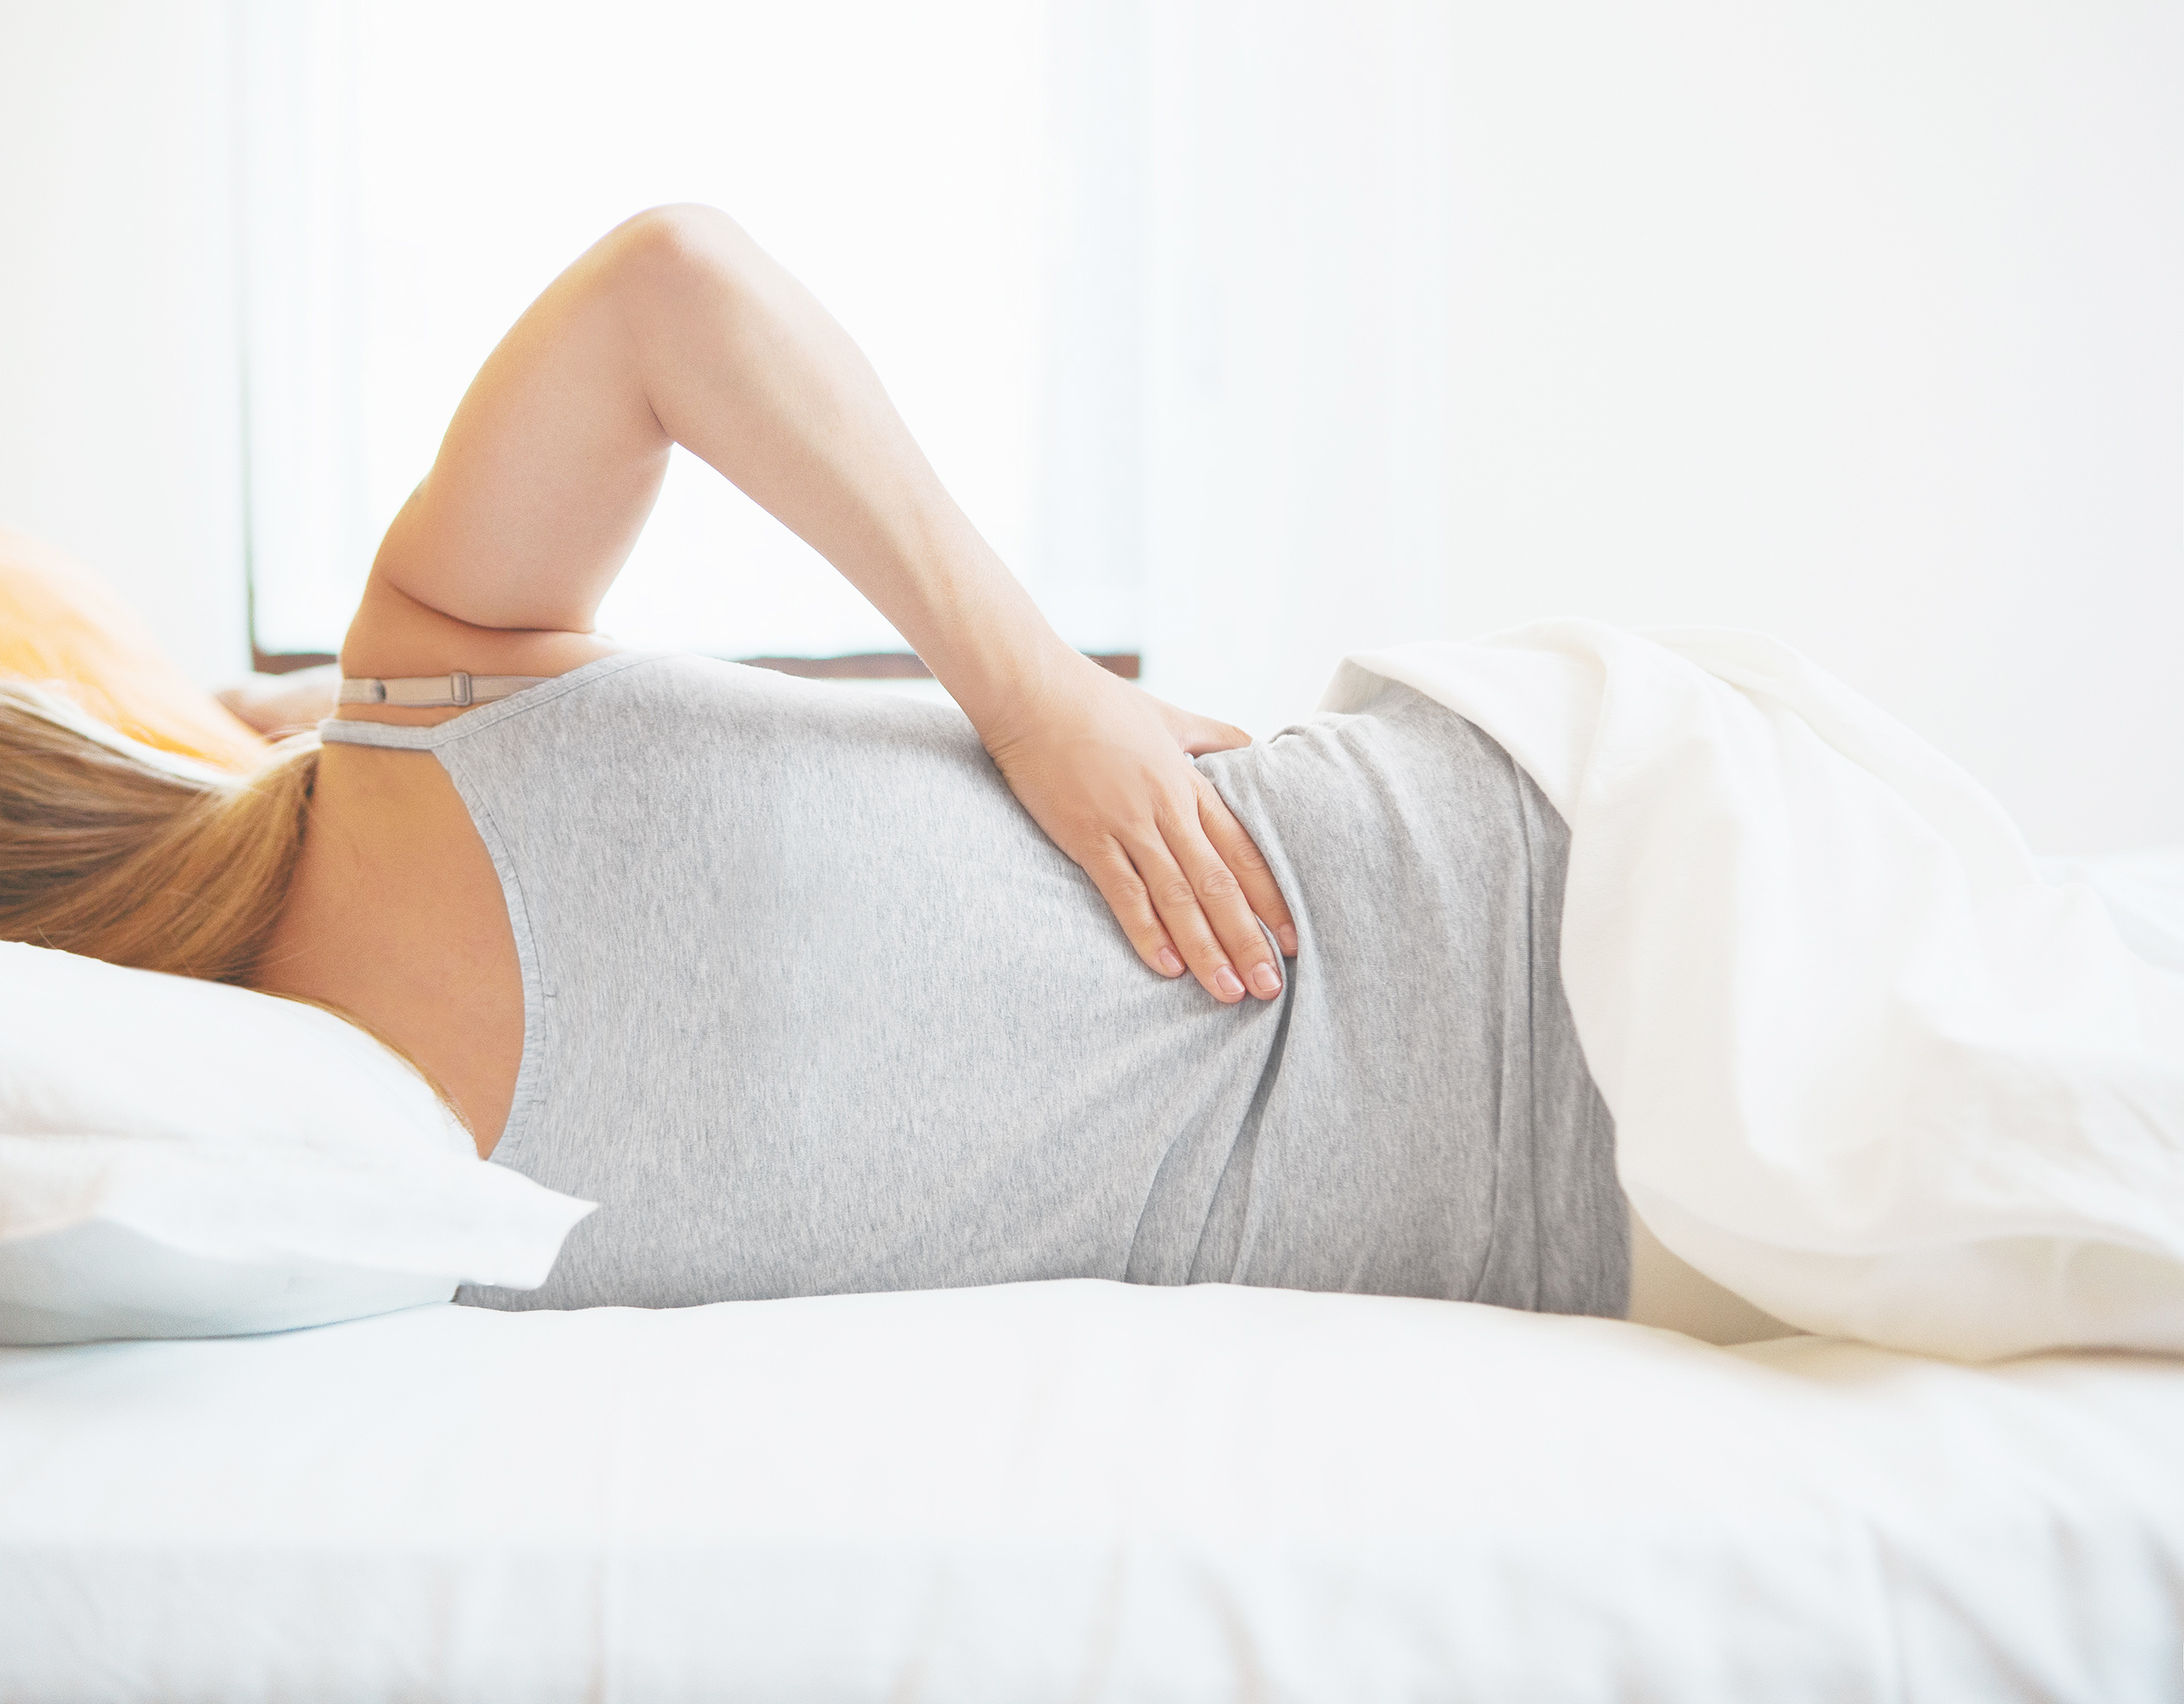 A Comprehensive Guide on How to Sleep Better With Sciatica